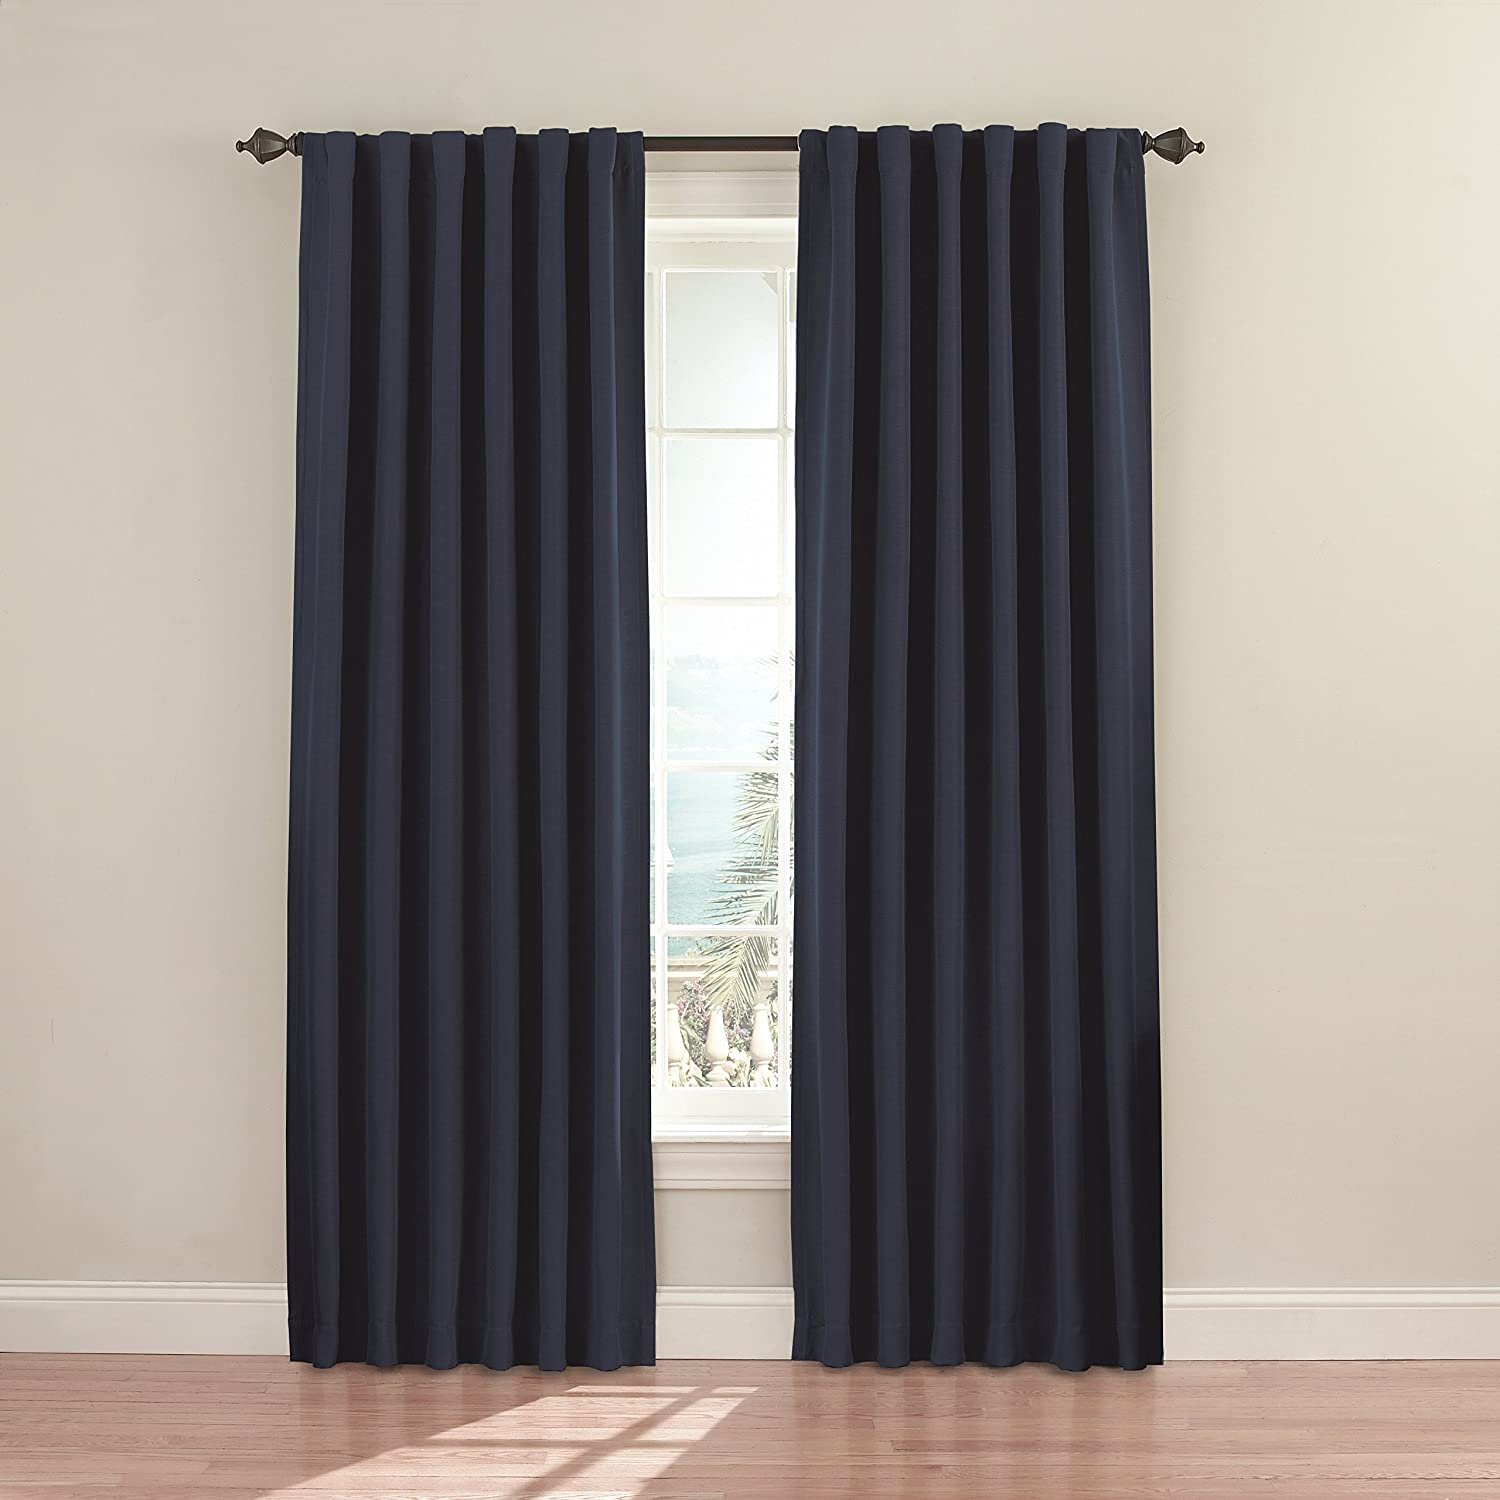 """ECLIPSE Fresno Thermal Insulated Single Panel Rod Pocket Darkening Curtains for Living Room, 52"""" x 84"""", Dark Blue"""